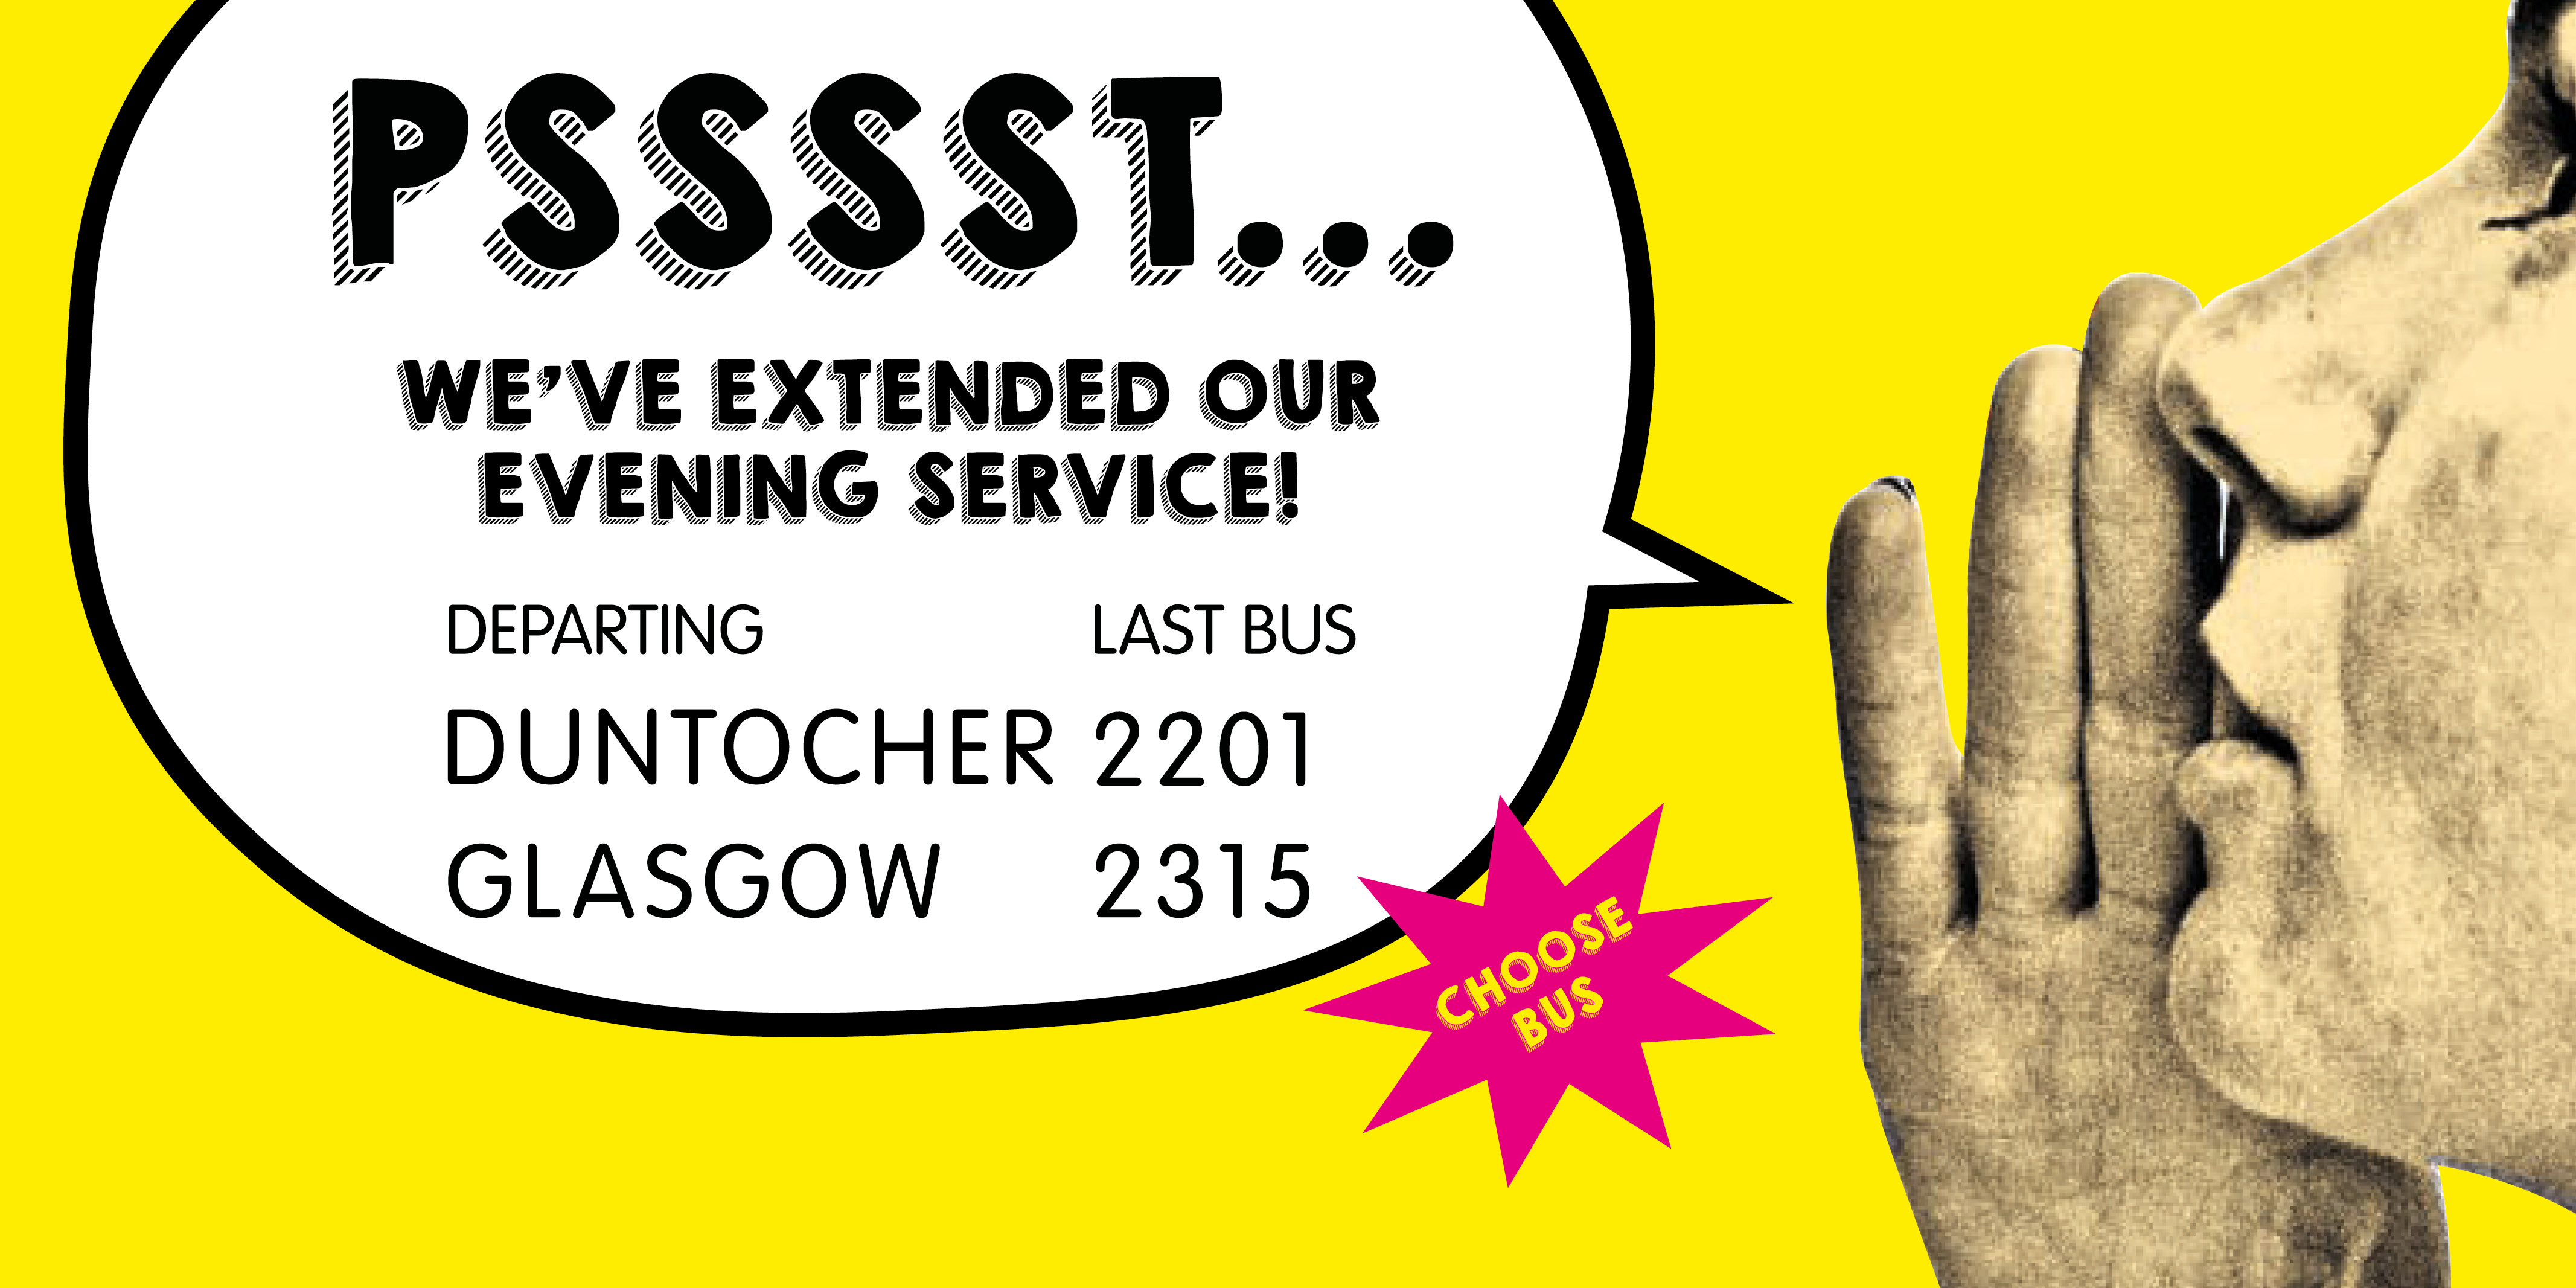 yellow graphic with woman whispering 'psst we've extended our evening service'